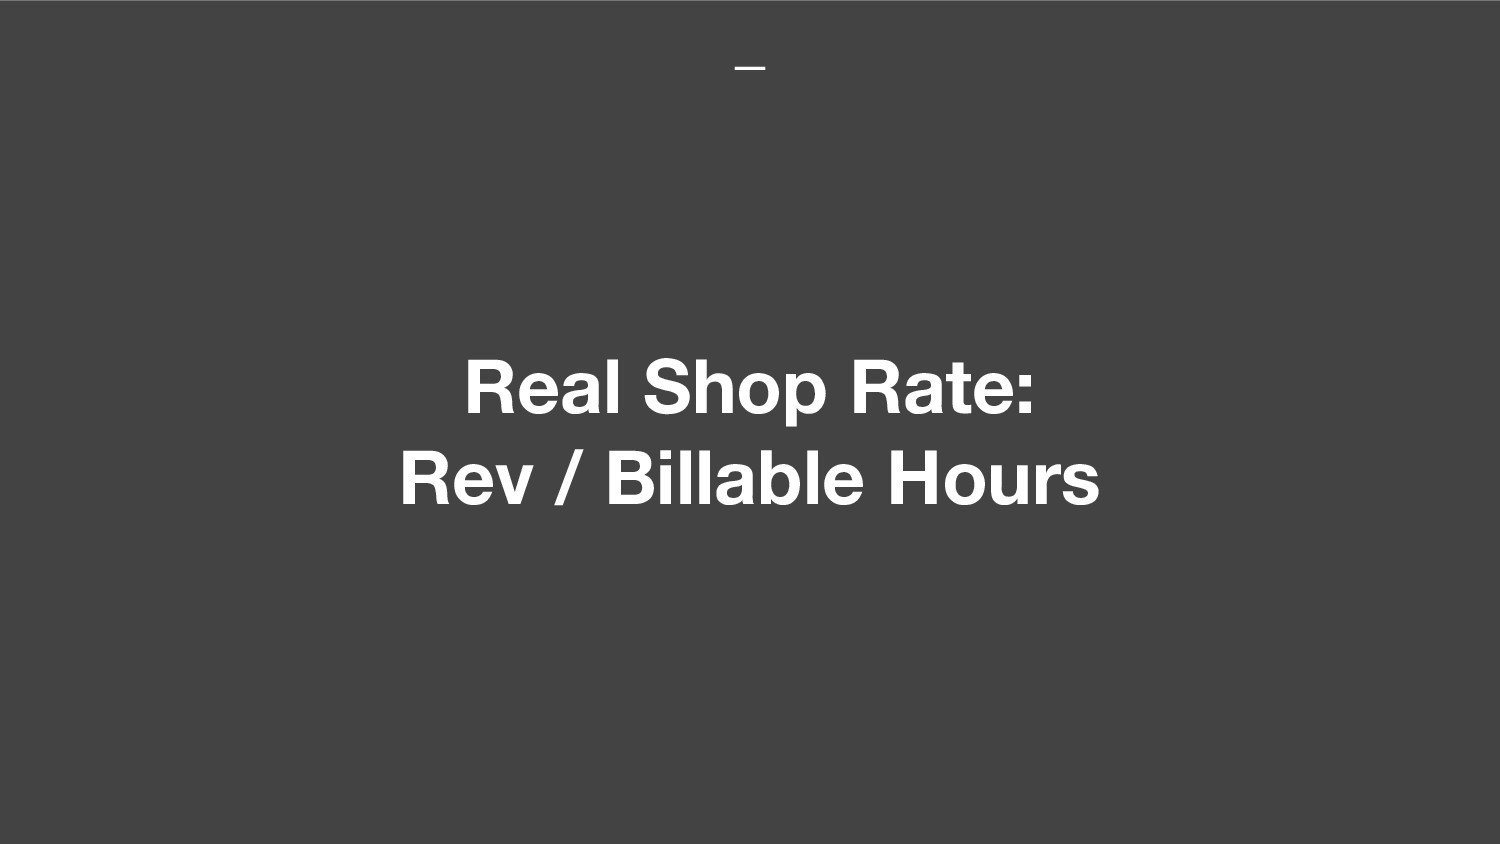 Real Shop Rate: Rev / Billable Hours